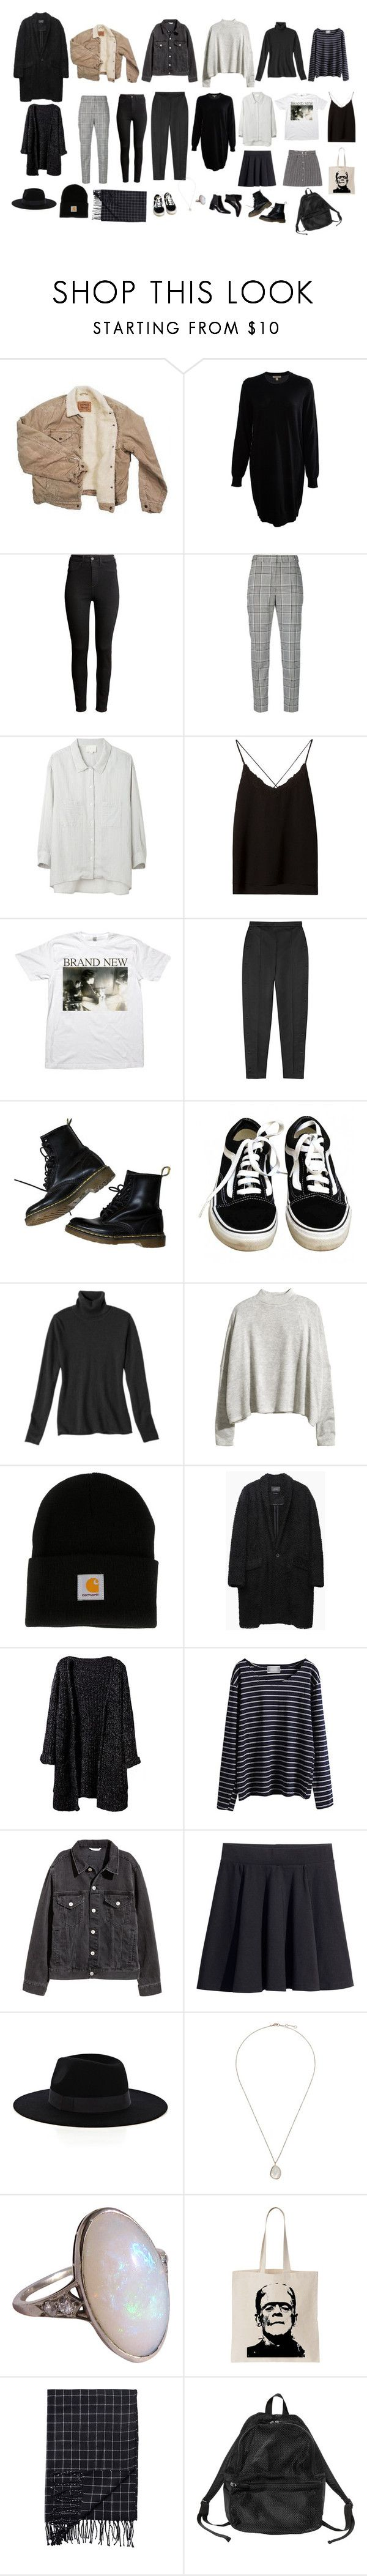 """Autumn Capsule Wardrobe"" by seven-moths ❤ liked on Polyvore featuring Levi's, Burberry, H&M, Alexander Wang, Band of Outsiders, Massimo Dutti, Dr. Martens, Vans, Carhartt and Isabel Marant"